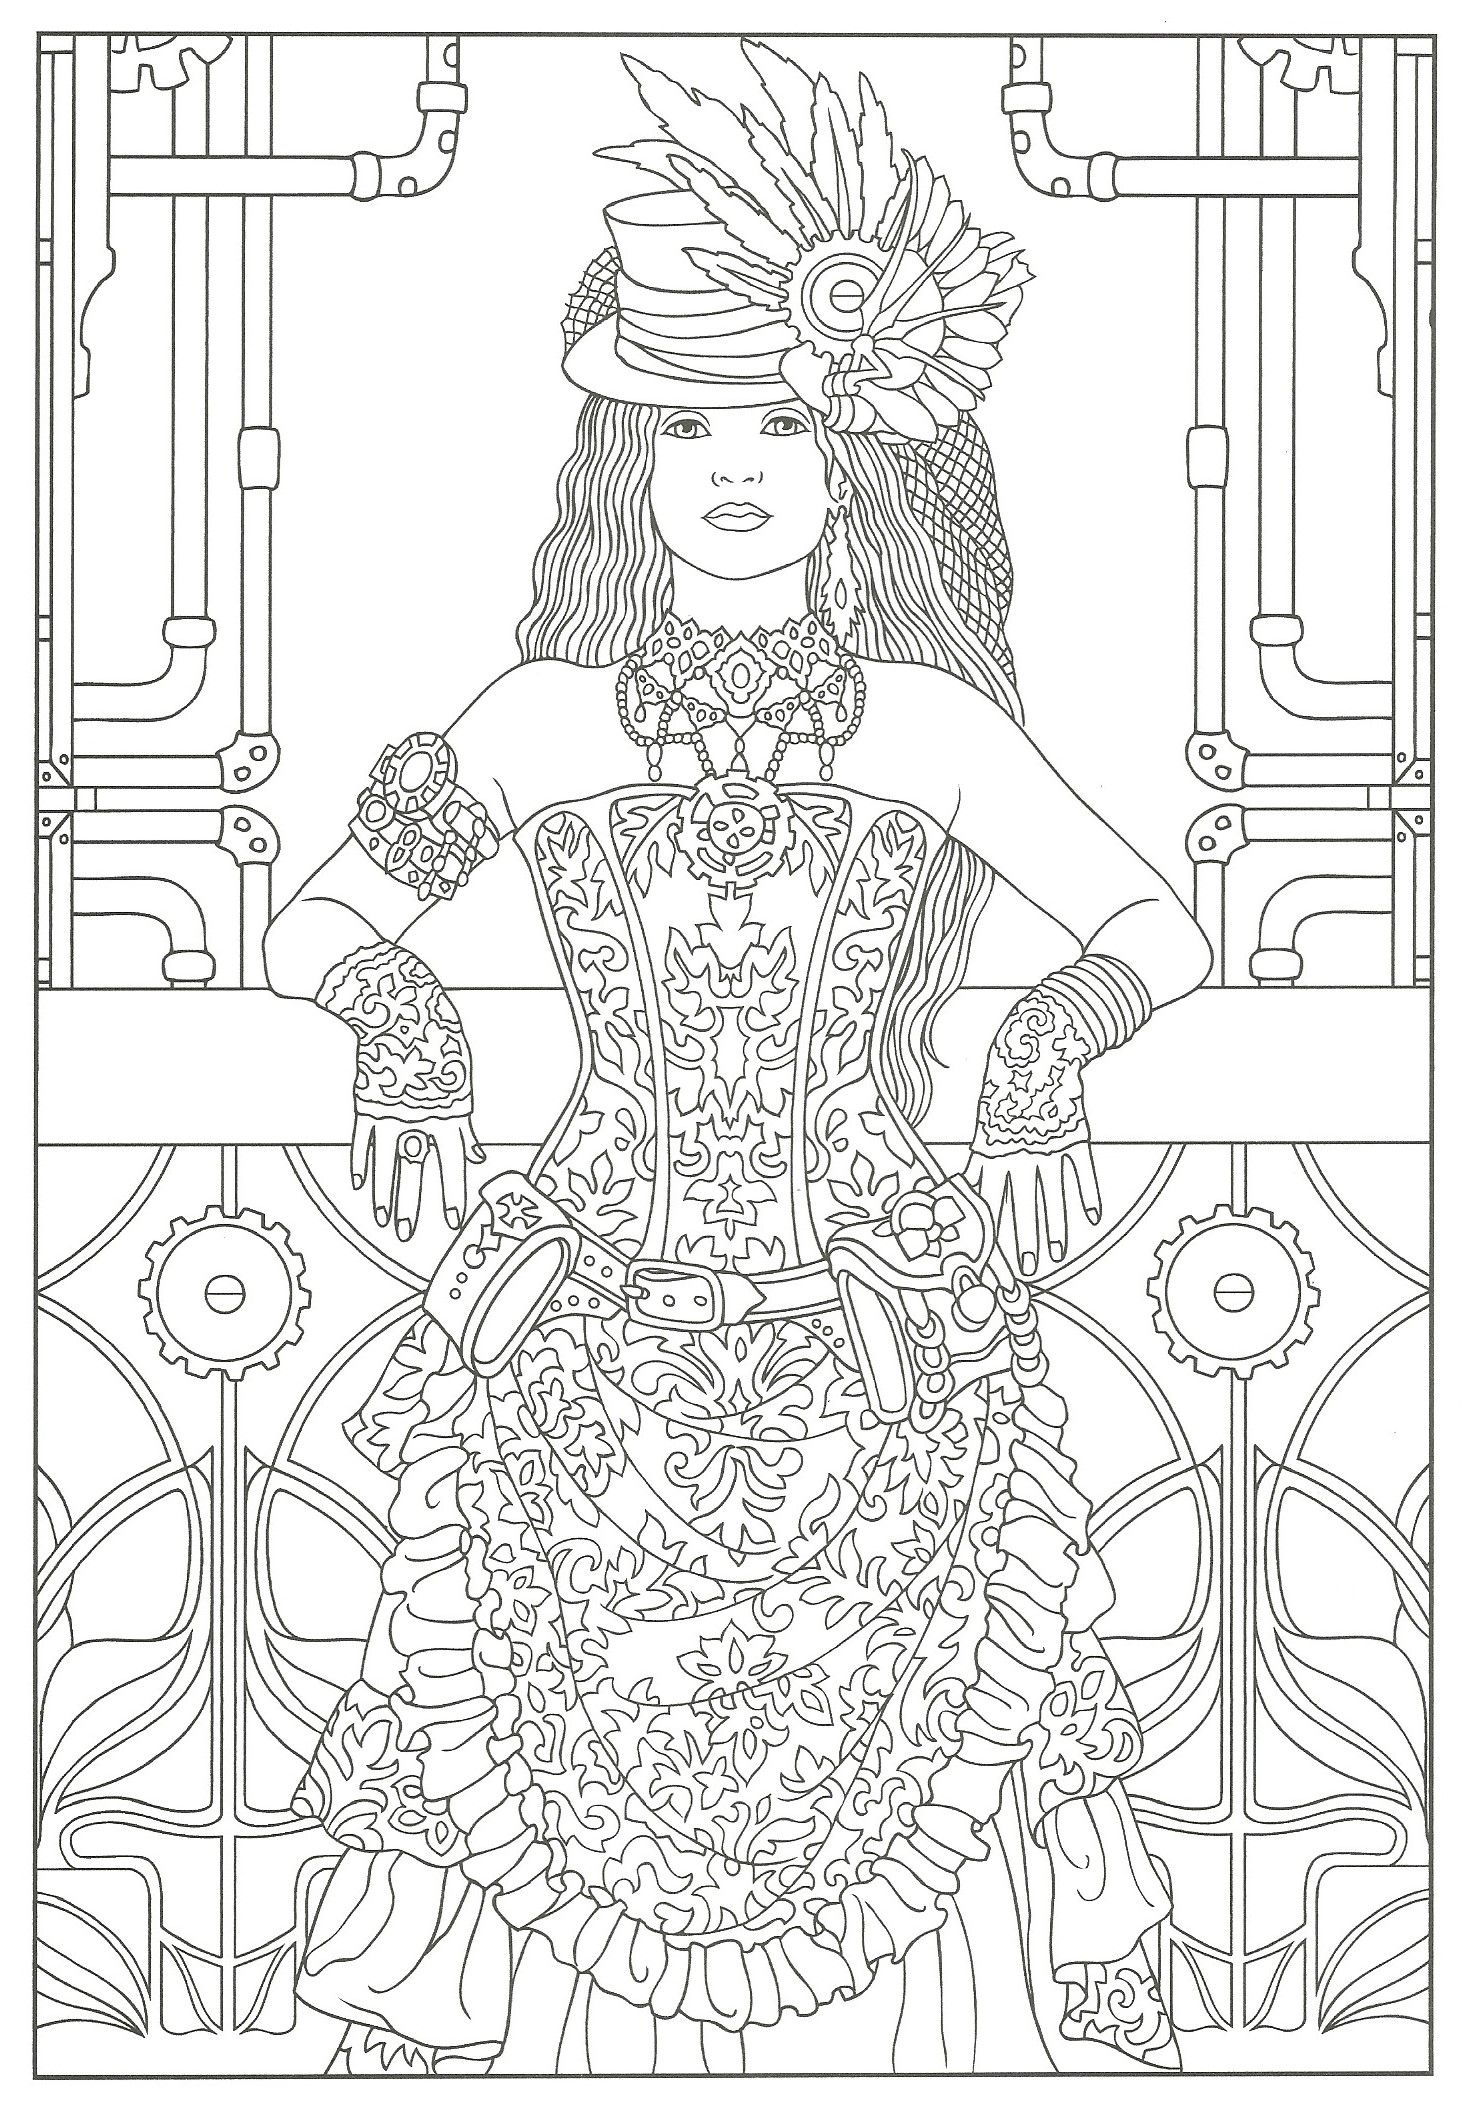 Steampunk Adult Coloring Artwork By Marty Noble Creative Haven Fashions Book